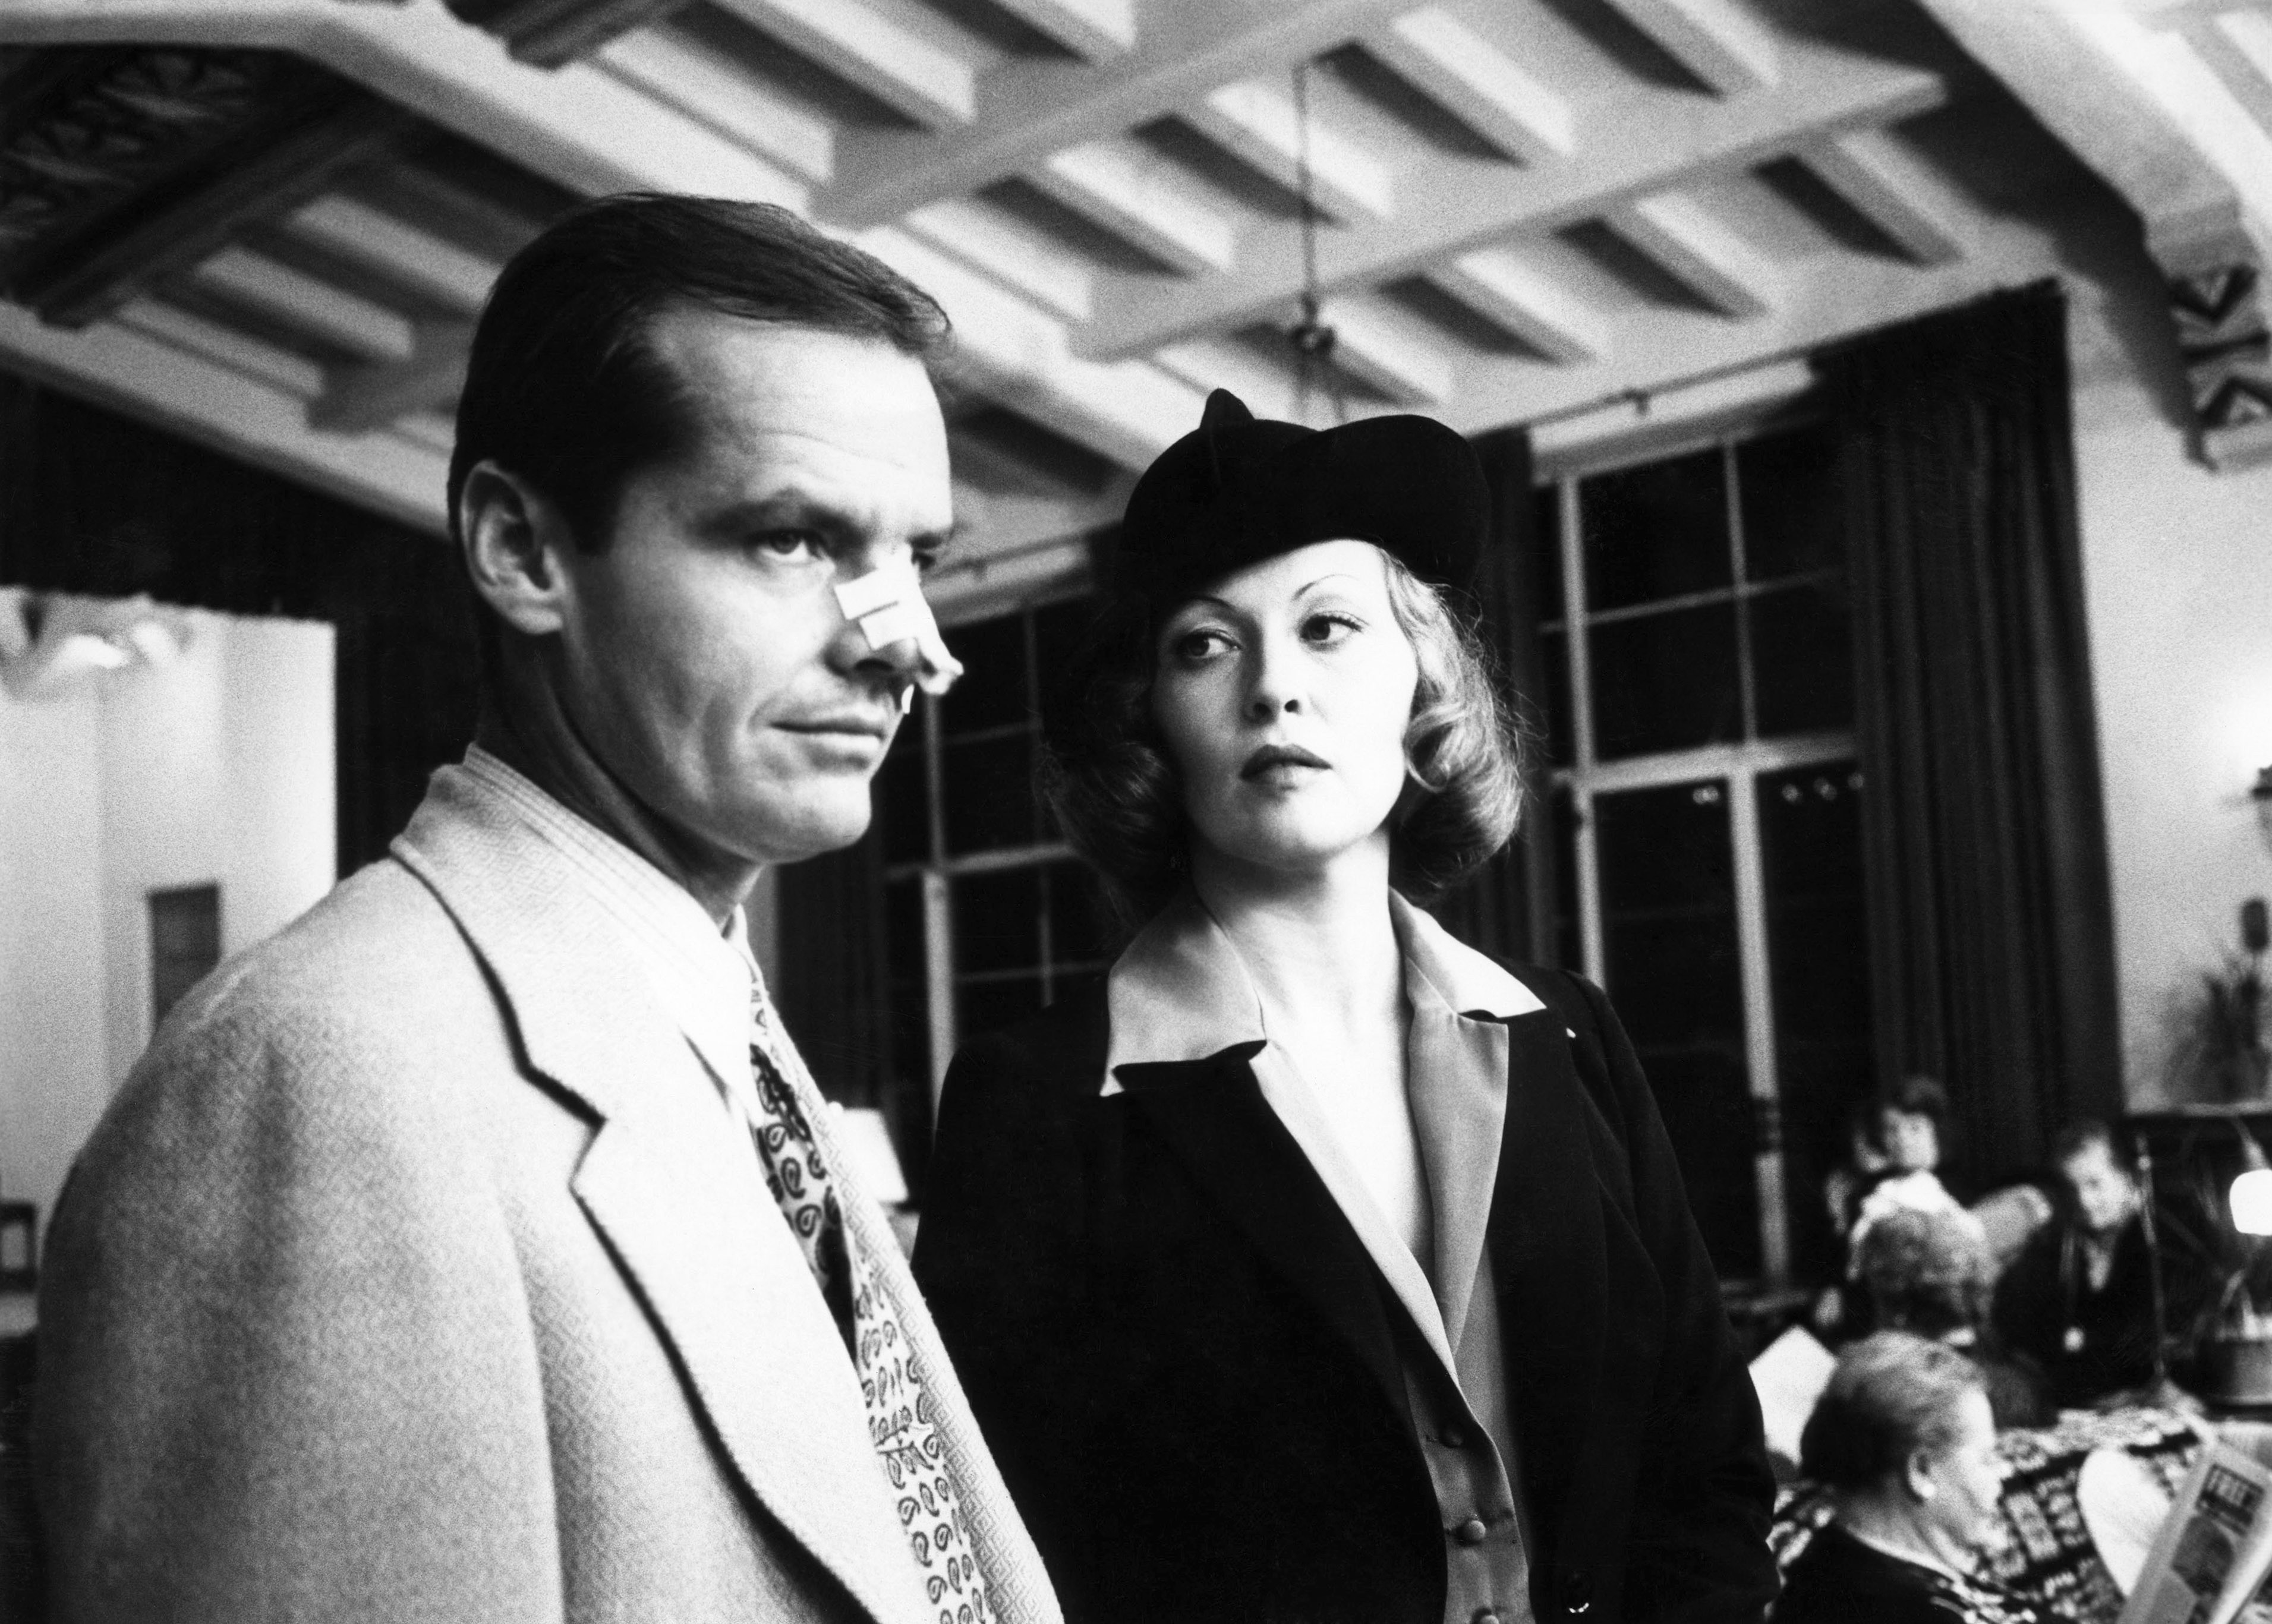 an analysis of the noir film chinatown A structural analysis of film noir openings part 1 the experience of cinema film noir: a study in narrative openings  (chinatown, roman polanski.